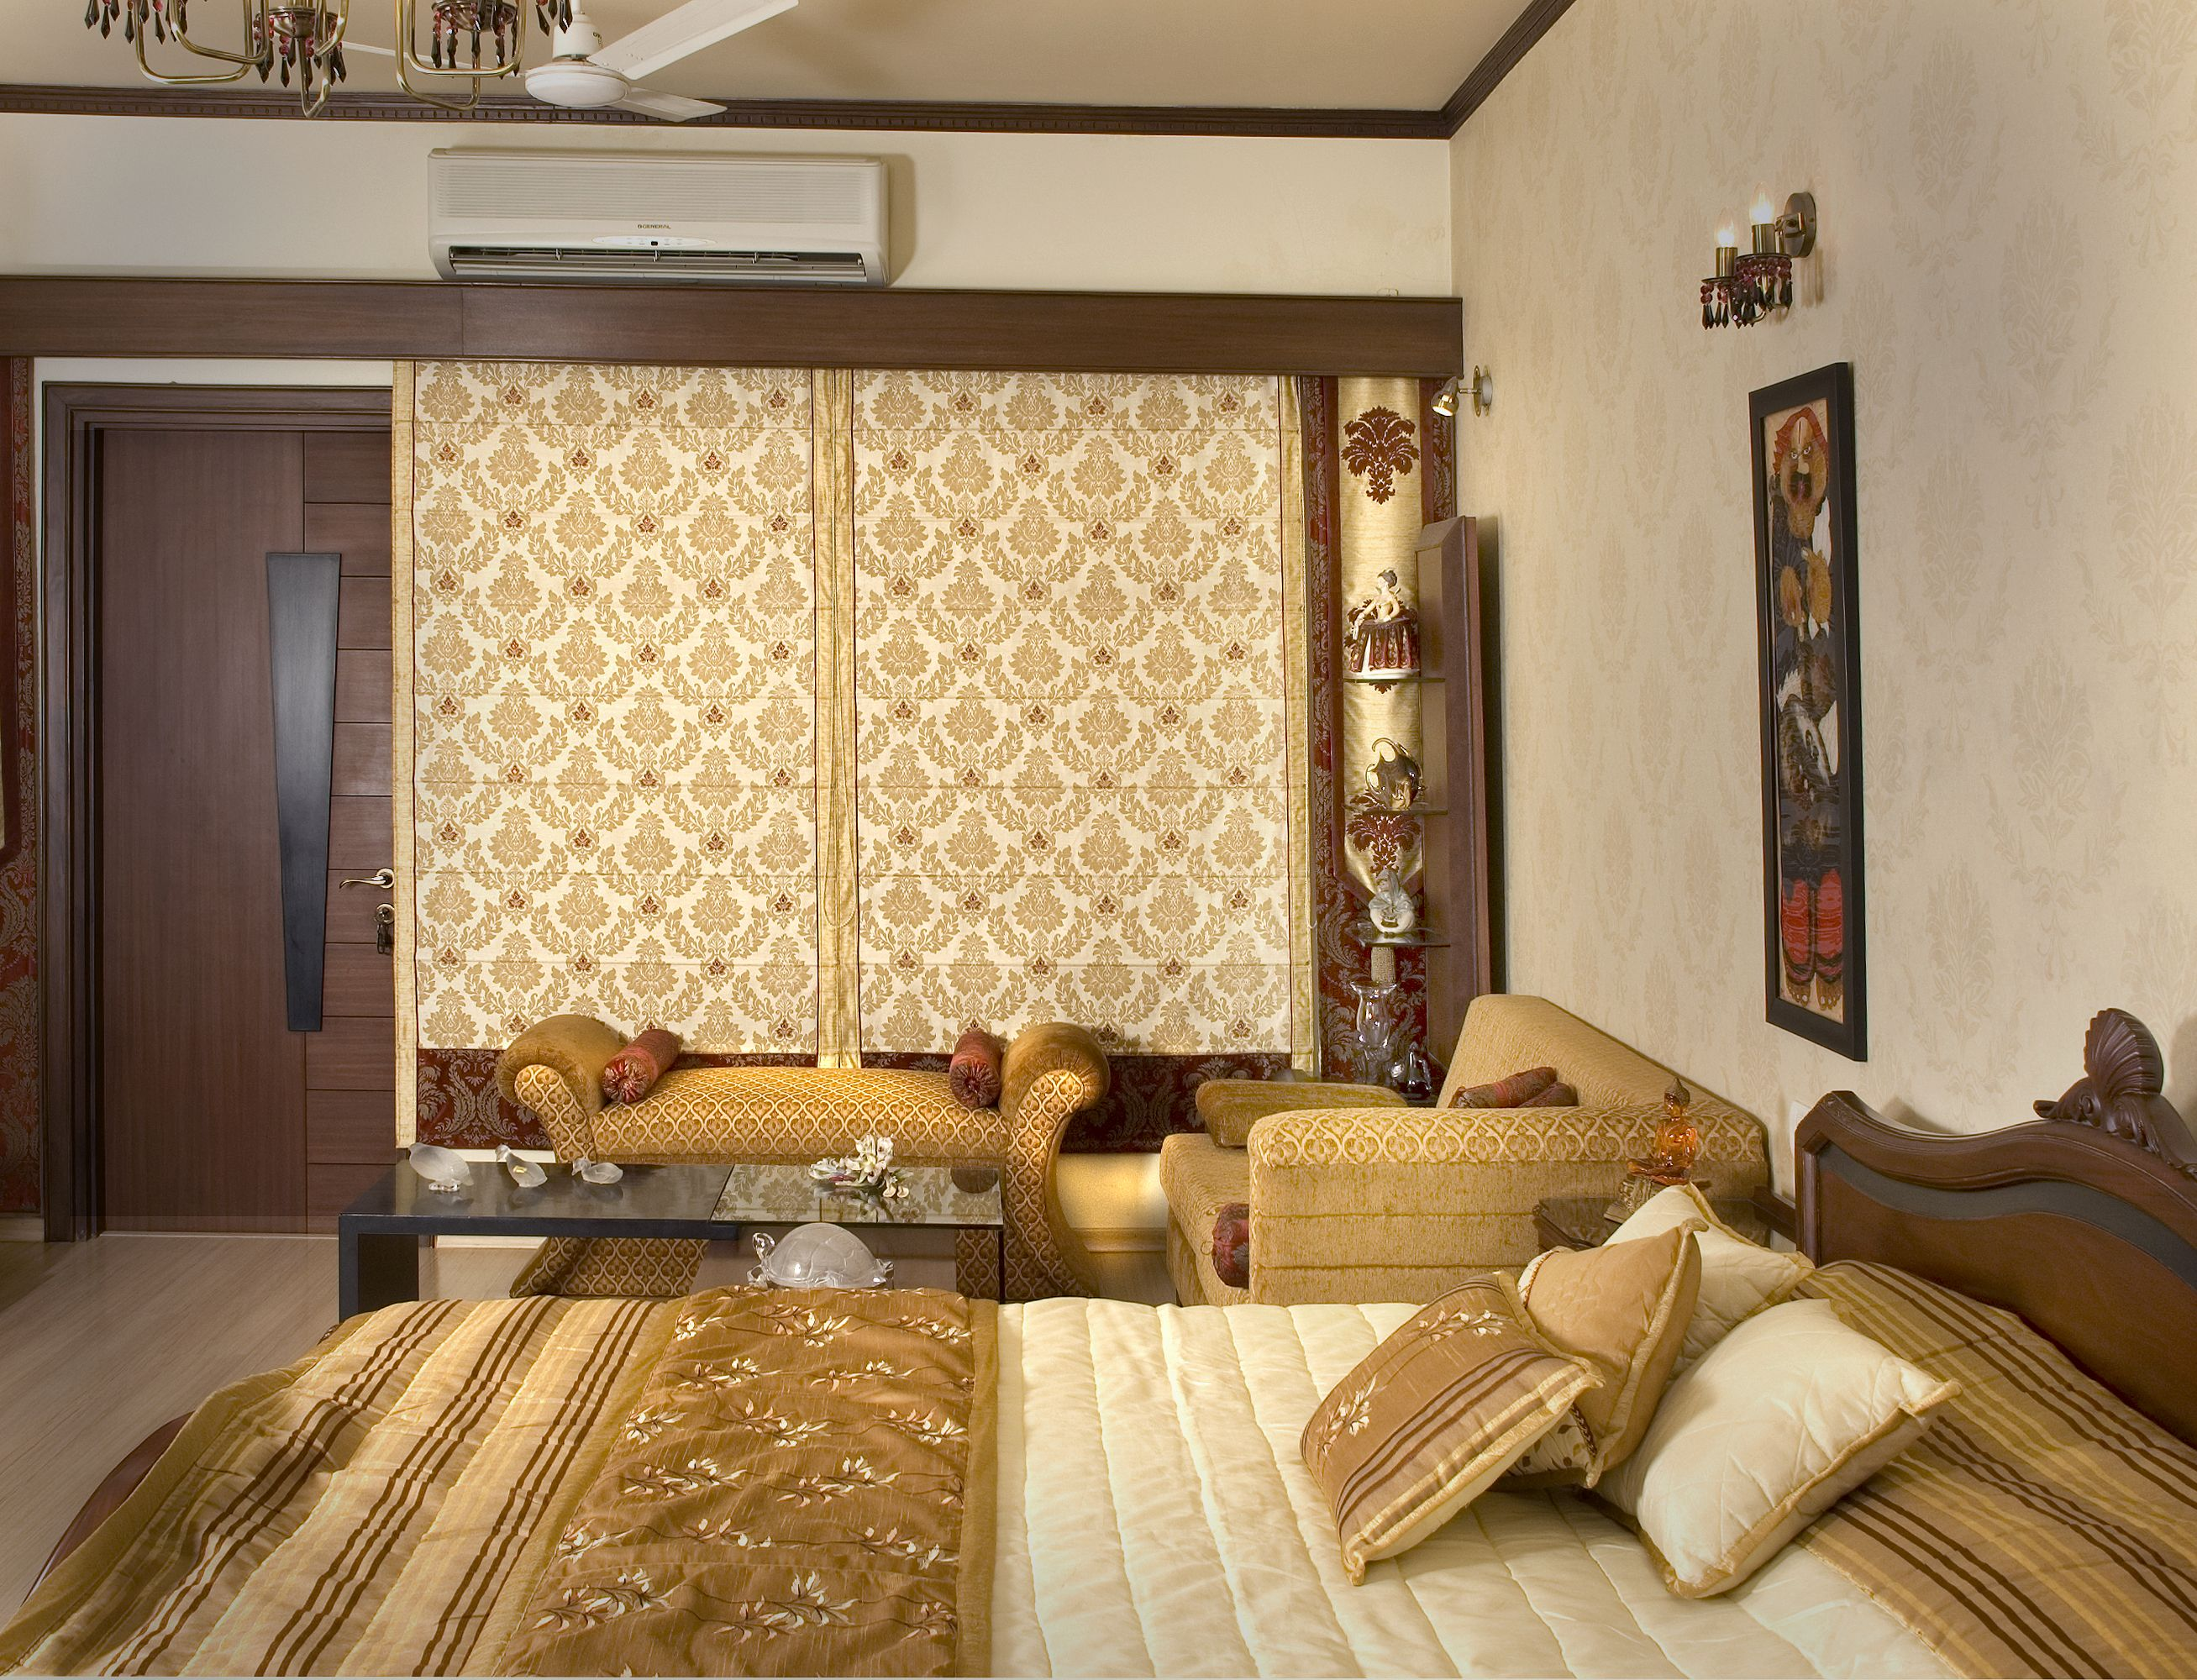 Luxury Master Bedroom Design By Madalsa Soni Interior Designer In Noida Up India Master